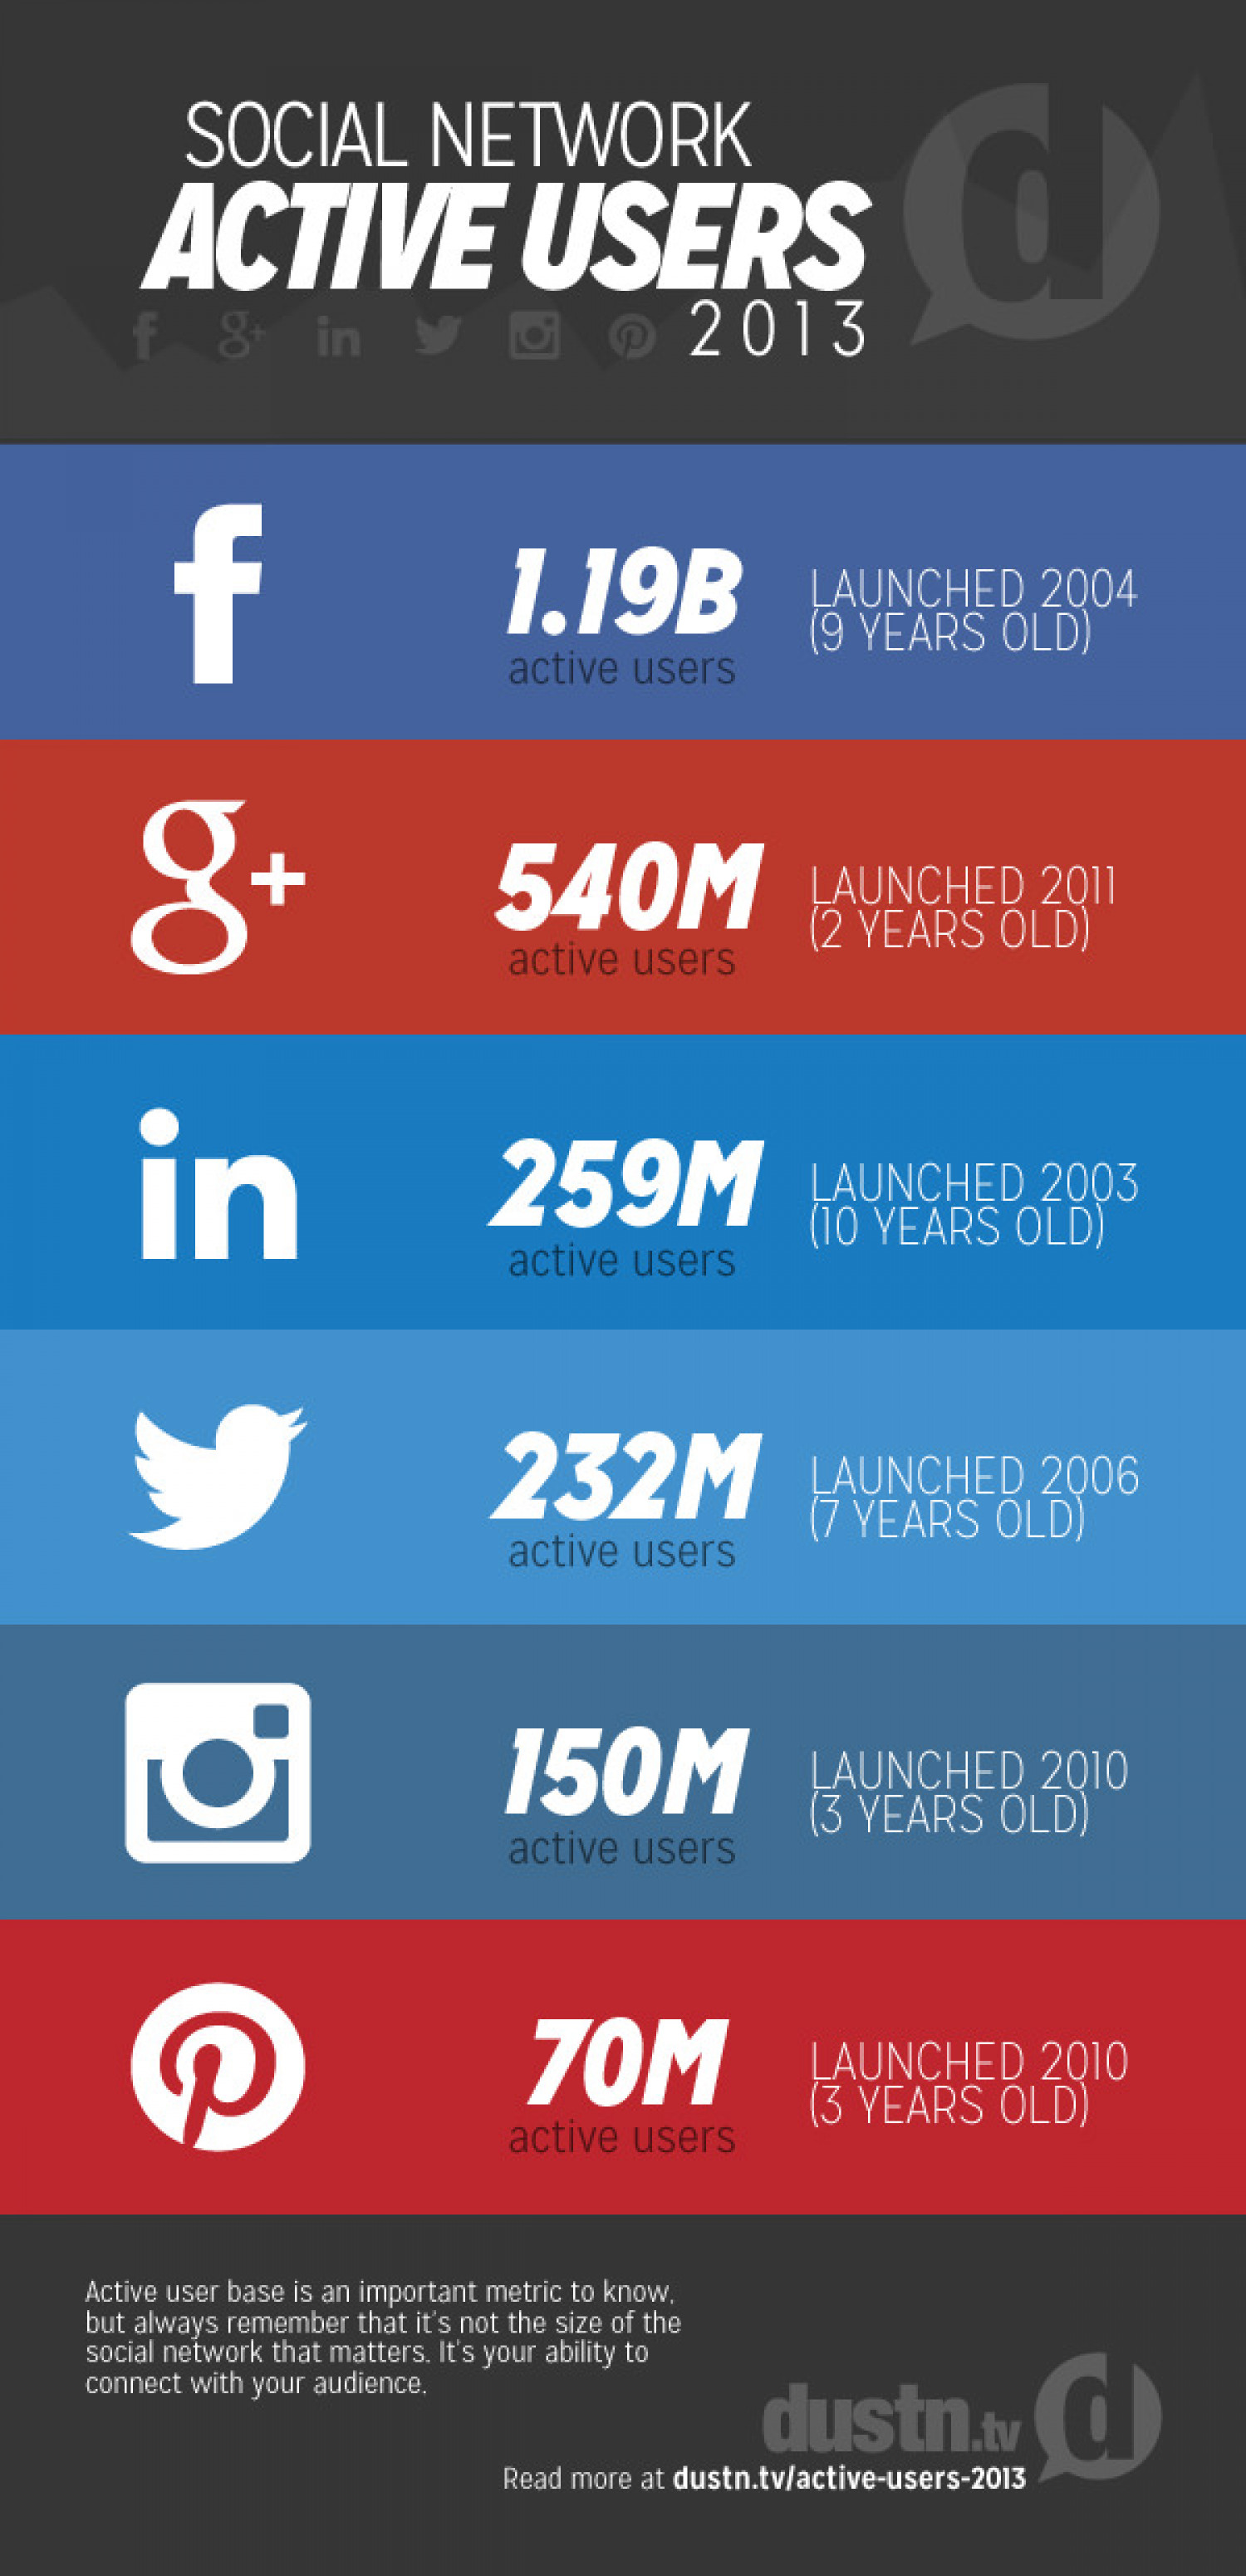 Social Media Active Users 2013 Infographic